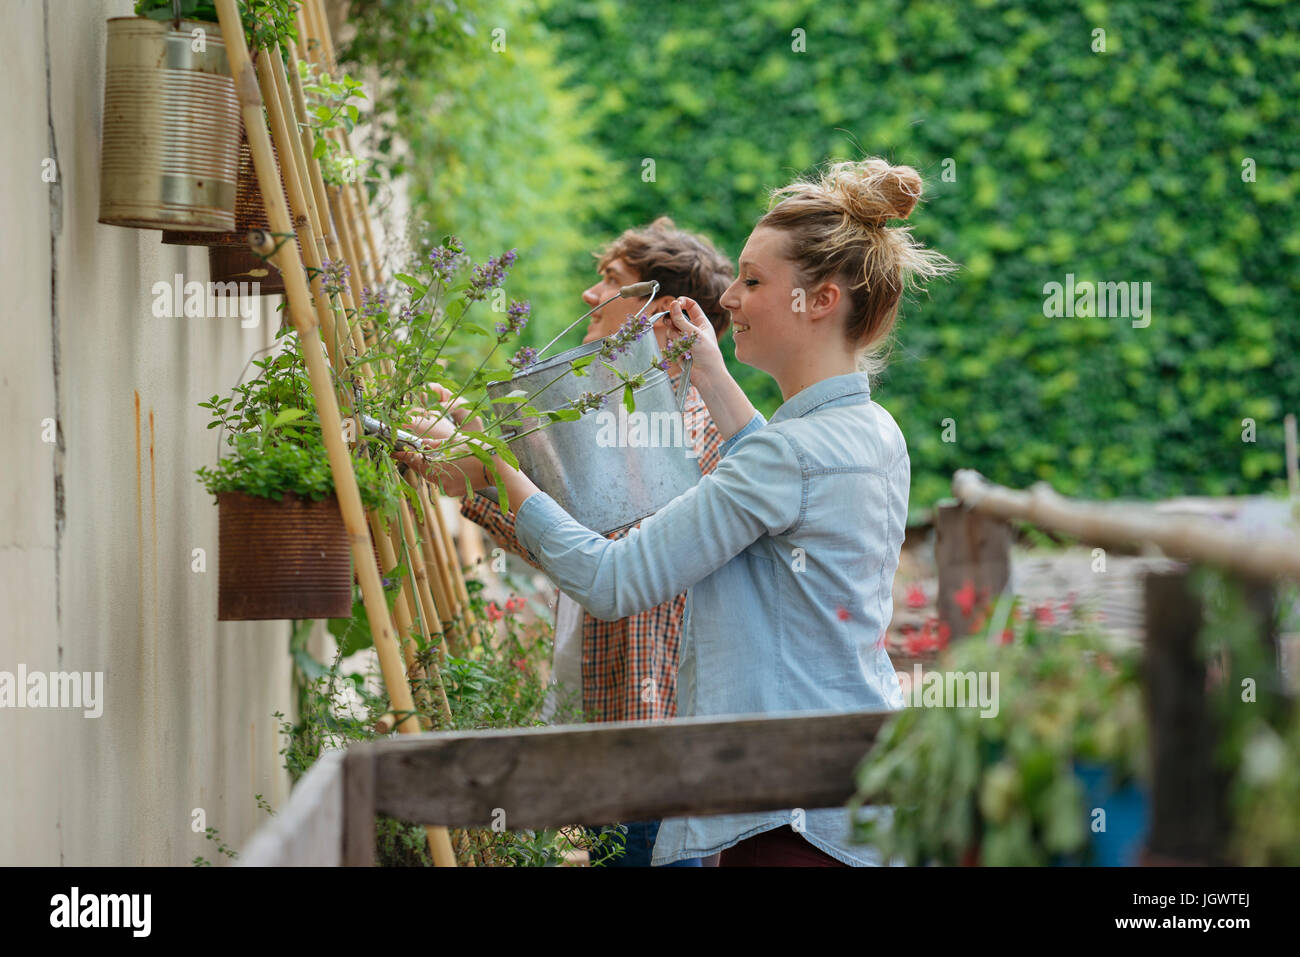 Young man and woman tending to plants growing in cans, young woman watering plants using watering can - Stock Image